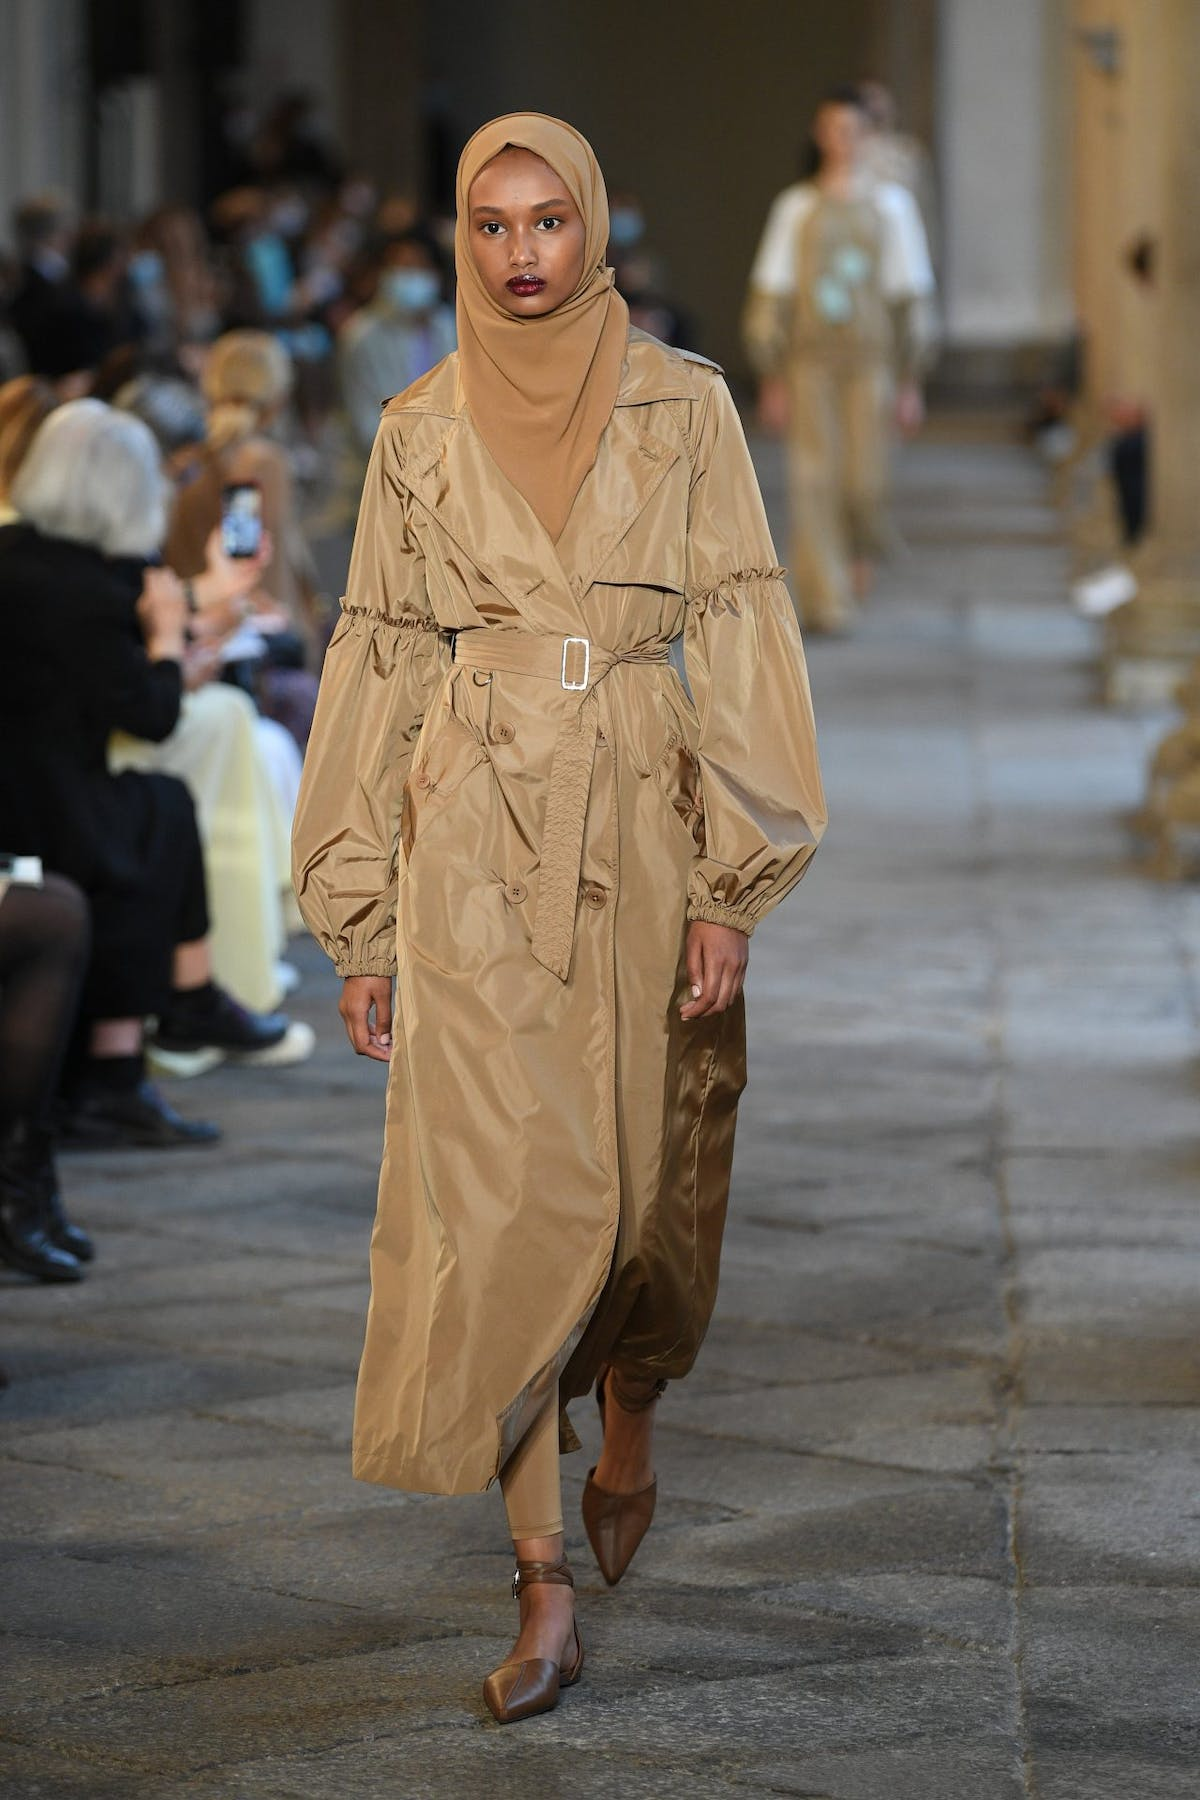 4 spring/summer 4 trends to wear for winter